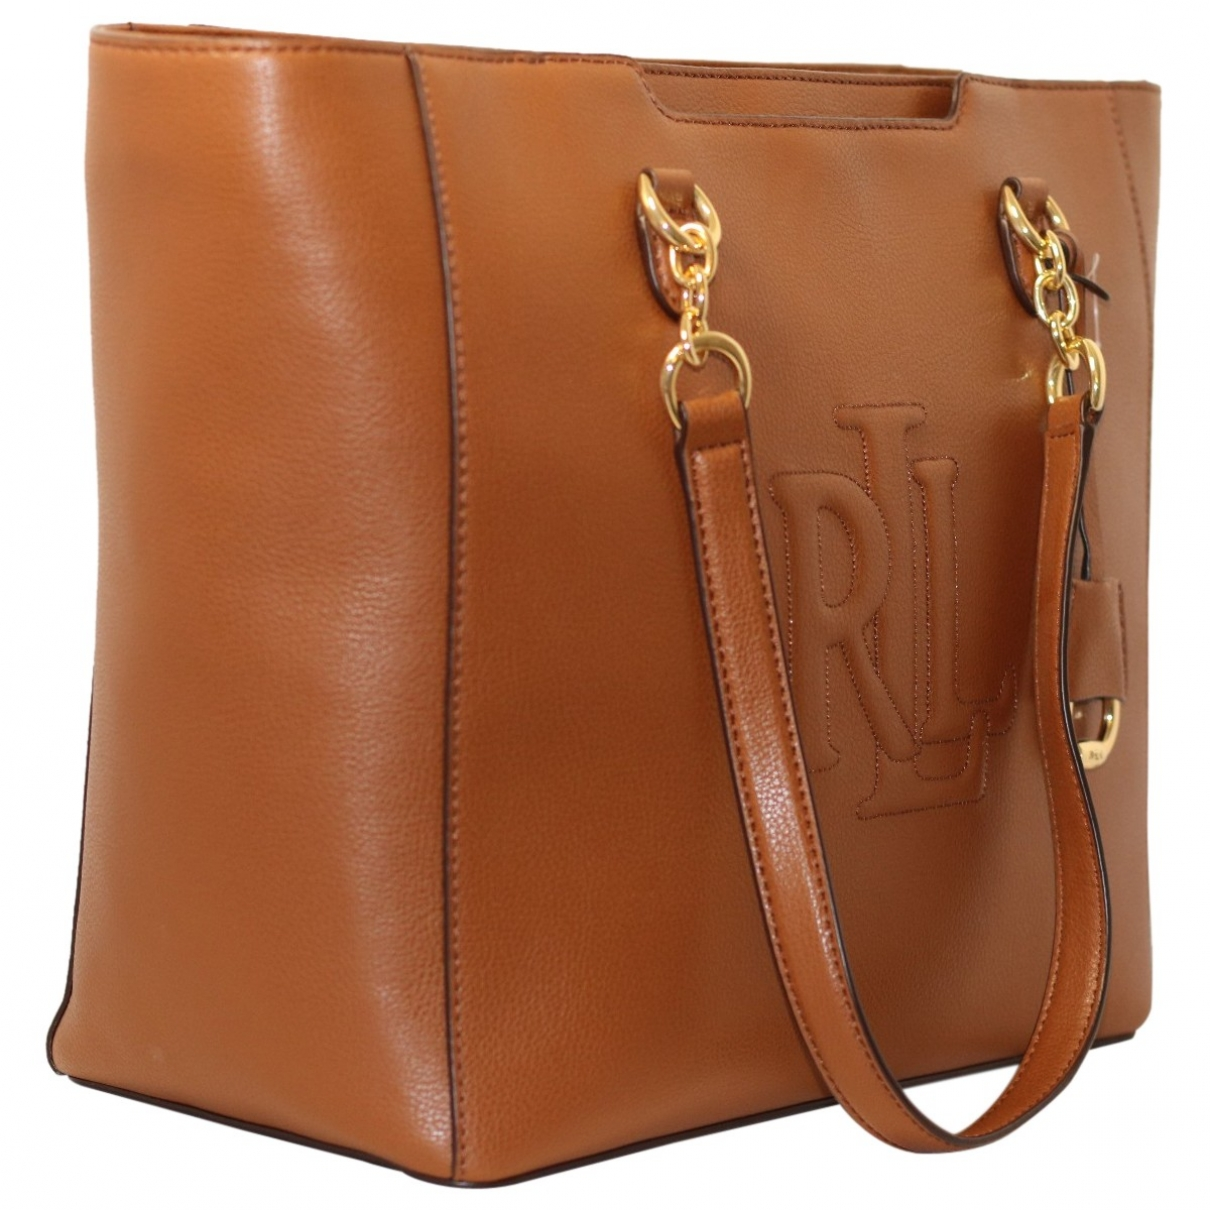 Lauren Ralph Lauren \N Camel Leather handbag for Women \N